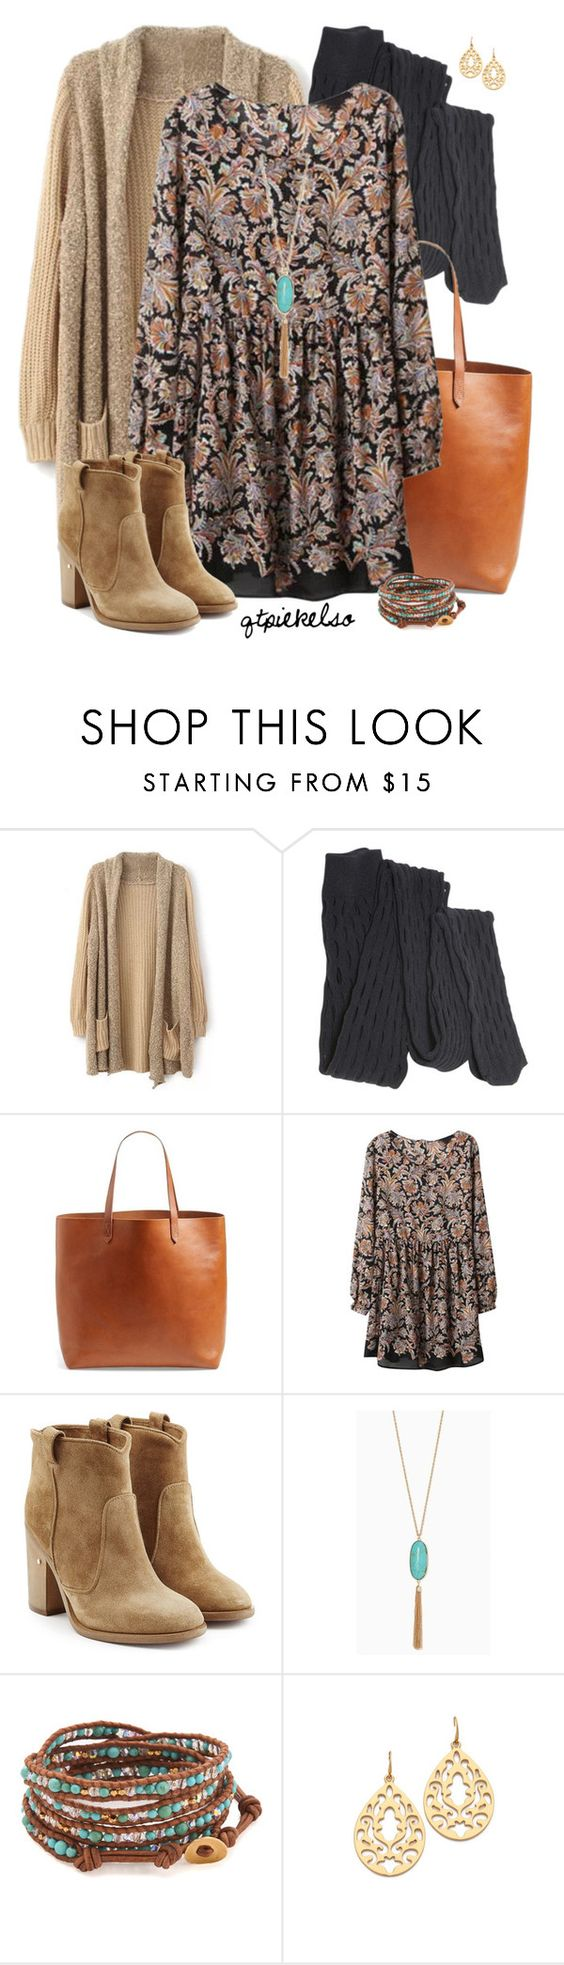 """Boho Booties"" by qtpiekelso on Polyvore featuring Proenza Schouler, Madewell, Laurence Dacade, Chan Luu and Juicy Couture:"